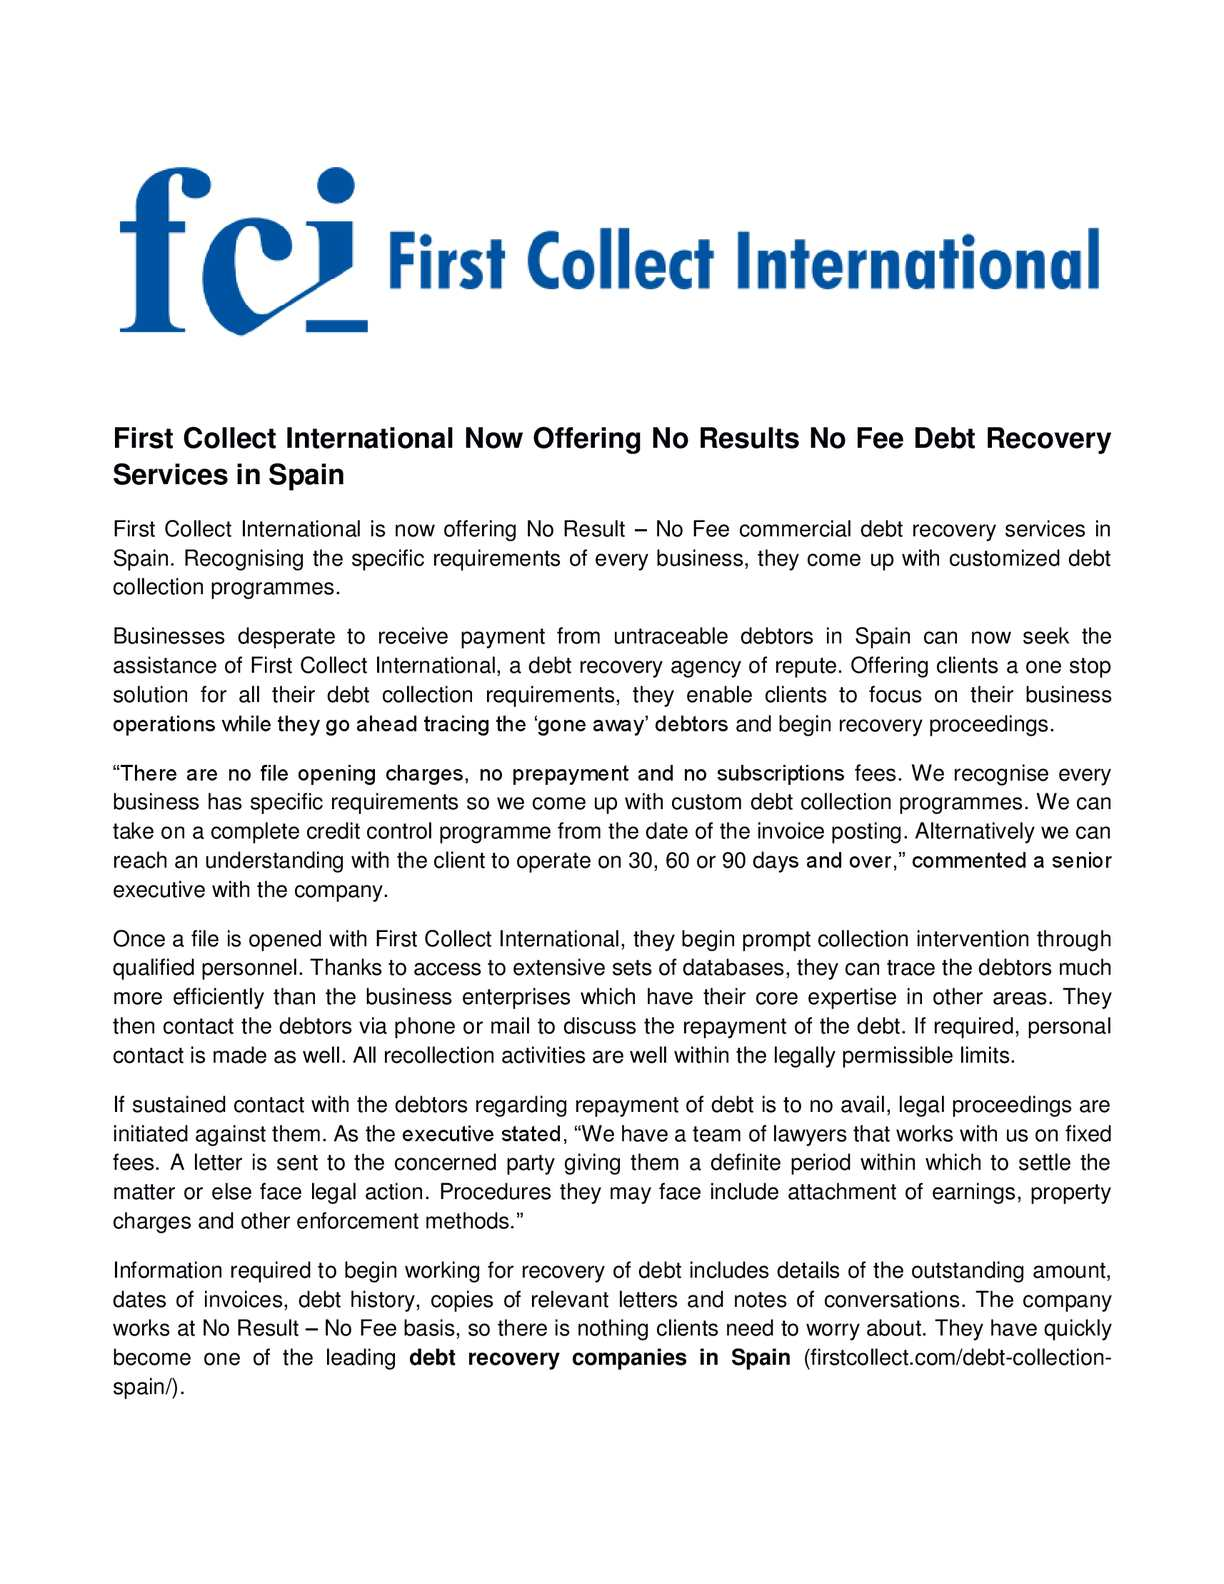 Calamo First Collect International Now Offering No Results Fee With An Understanding Of This Requirement Electric Debt Recovery Services In Spain